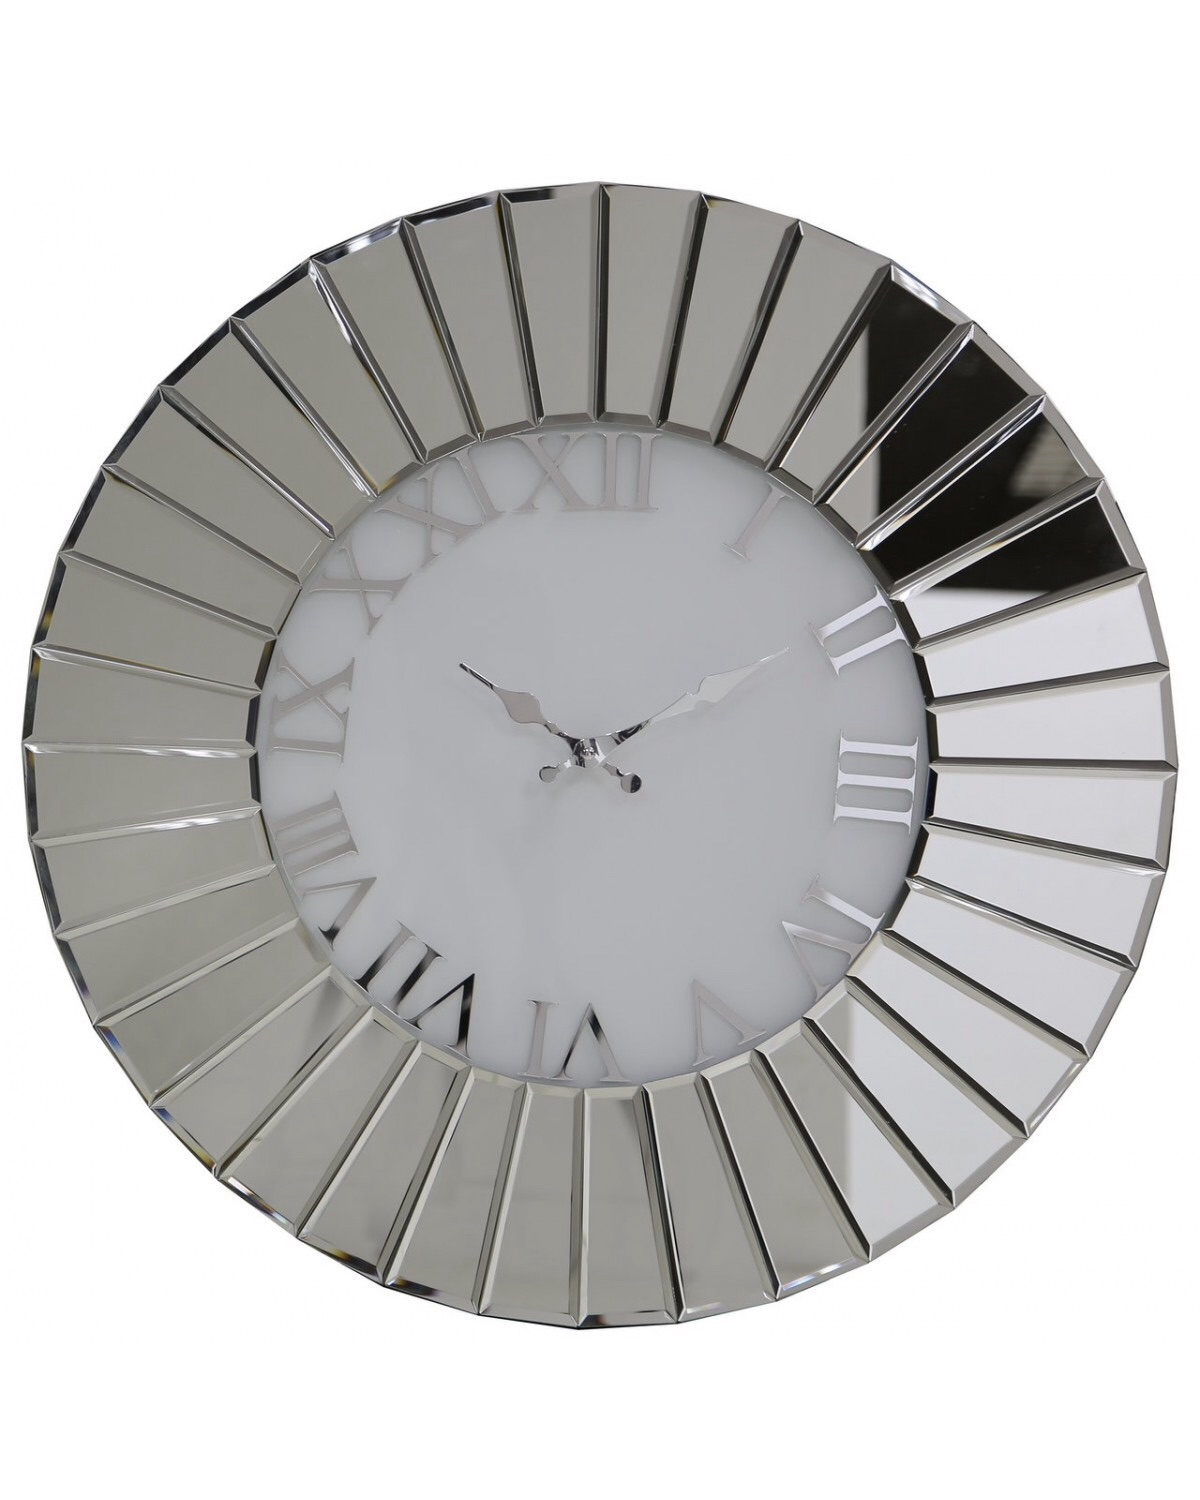 Round Mirrored Wall Clock 90cm Dia